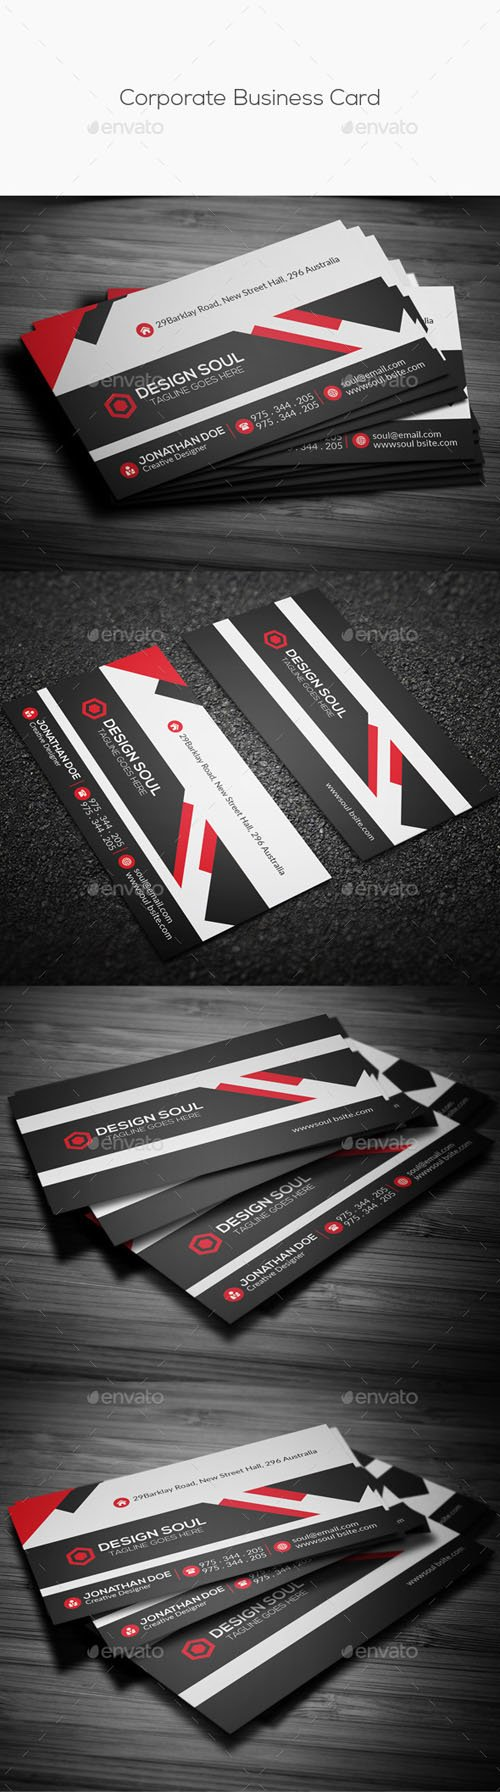 Corporate Business Card 14315028